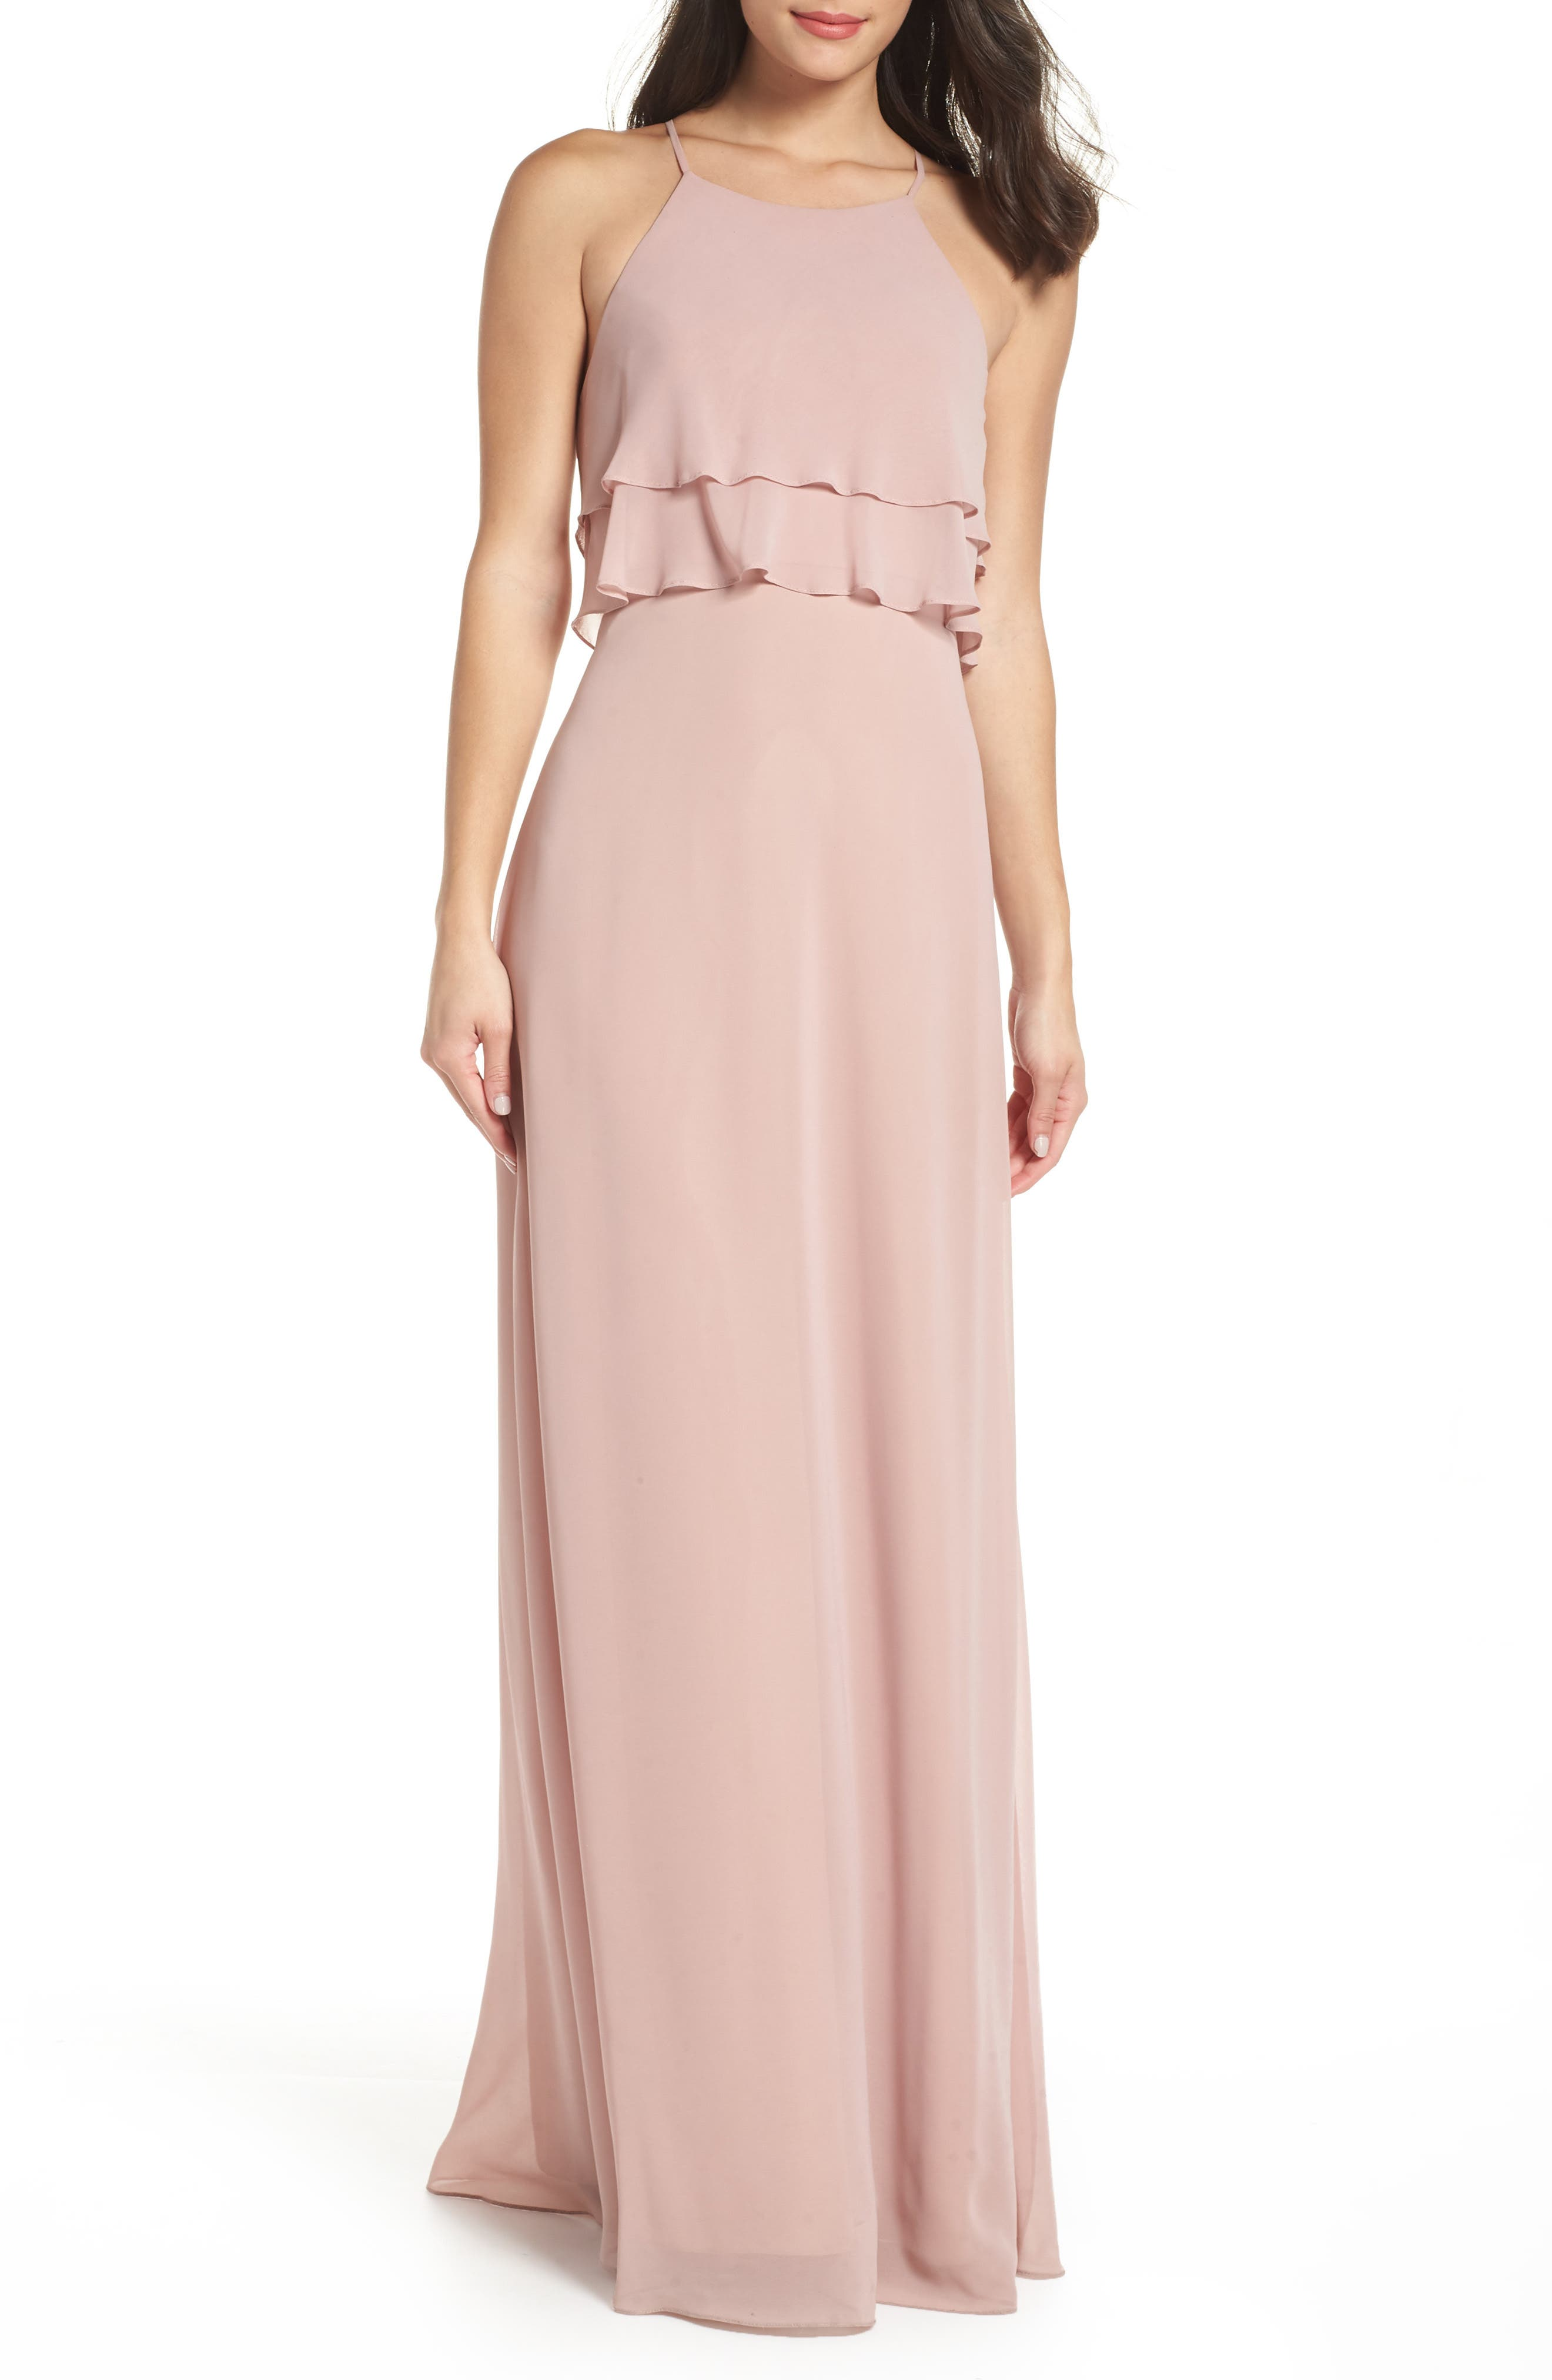 Charlie Ruffle Chiffon Gown,                         Main,                         color, WHIPPED APRICOT